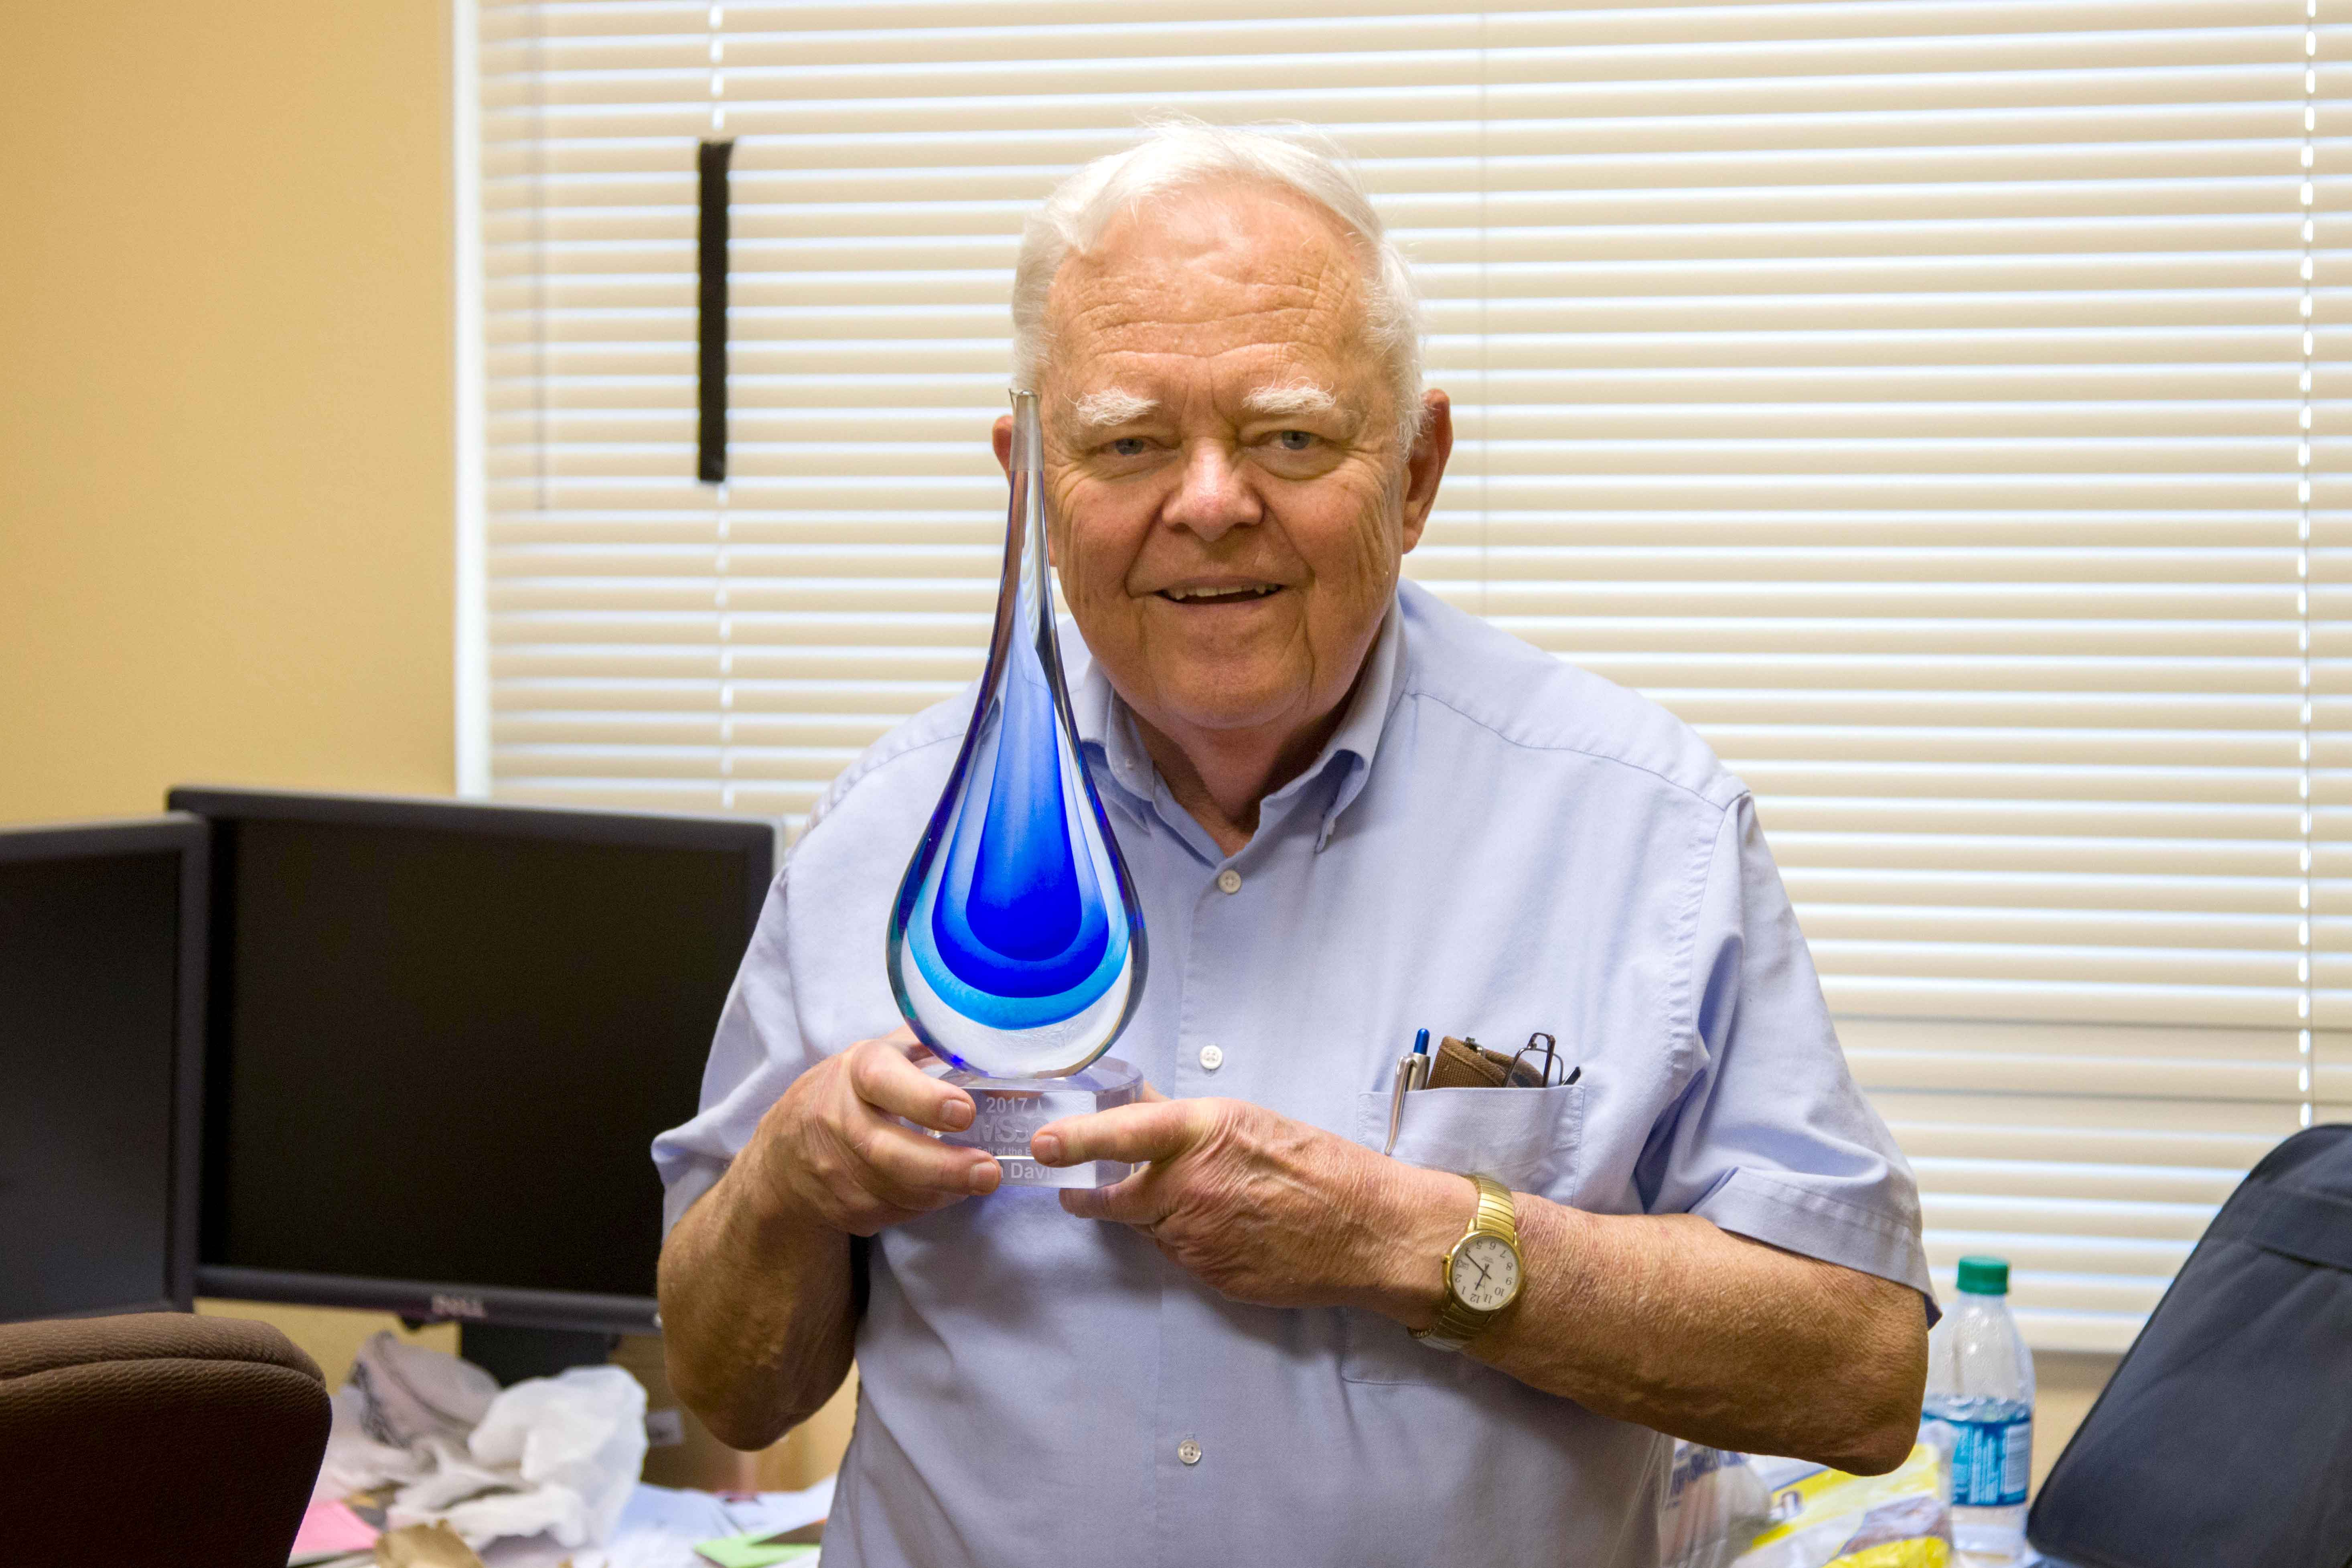 Thomas Davis, a civil engineering professor at UTEP, received the Salt of the Earth Award from the Multi-State Salinity Coalition.